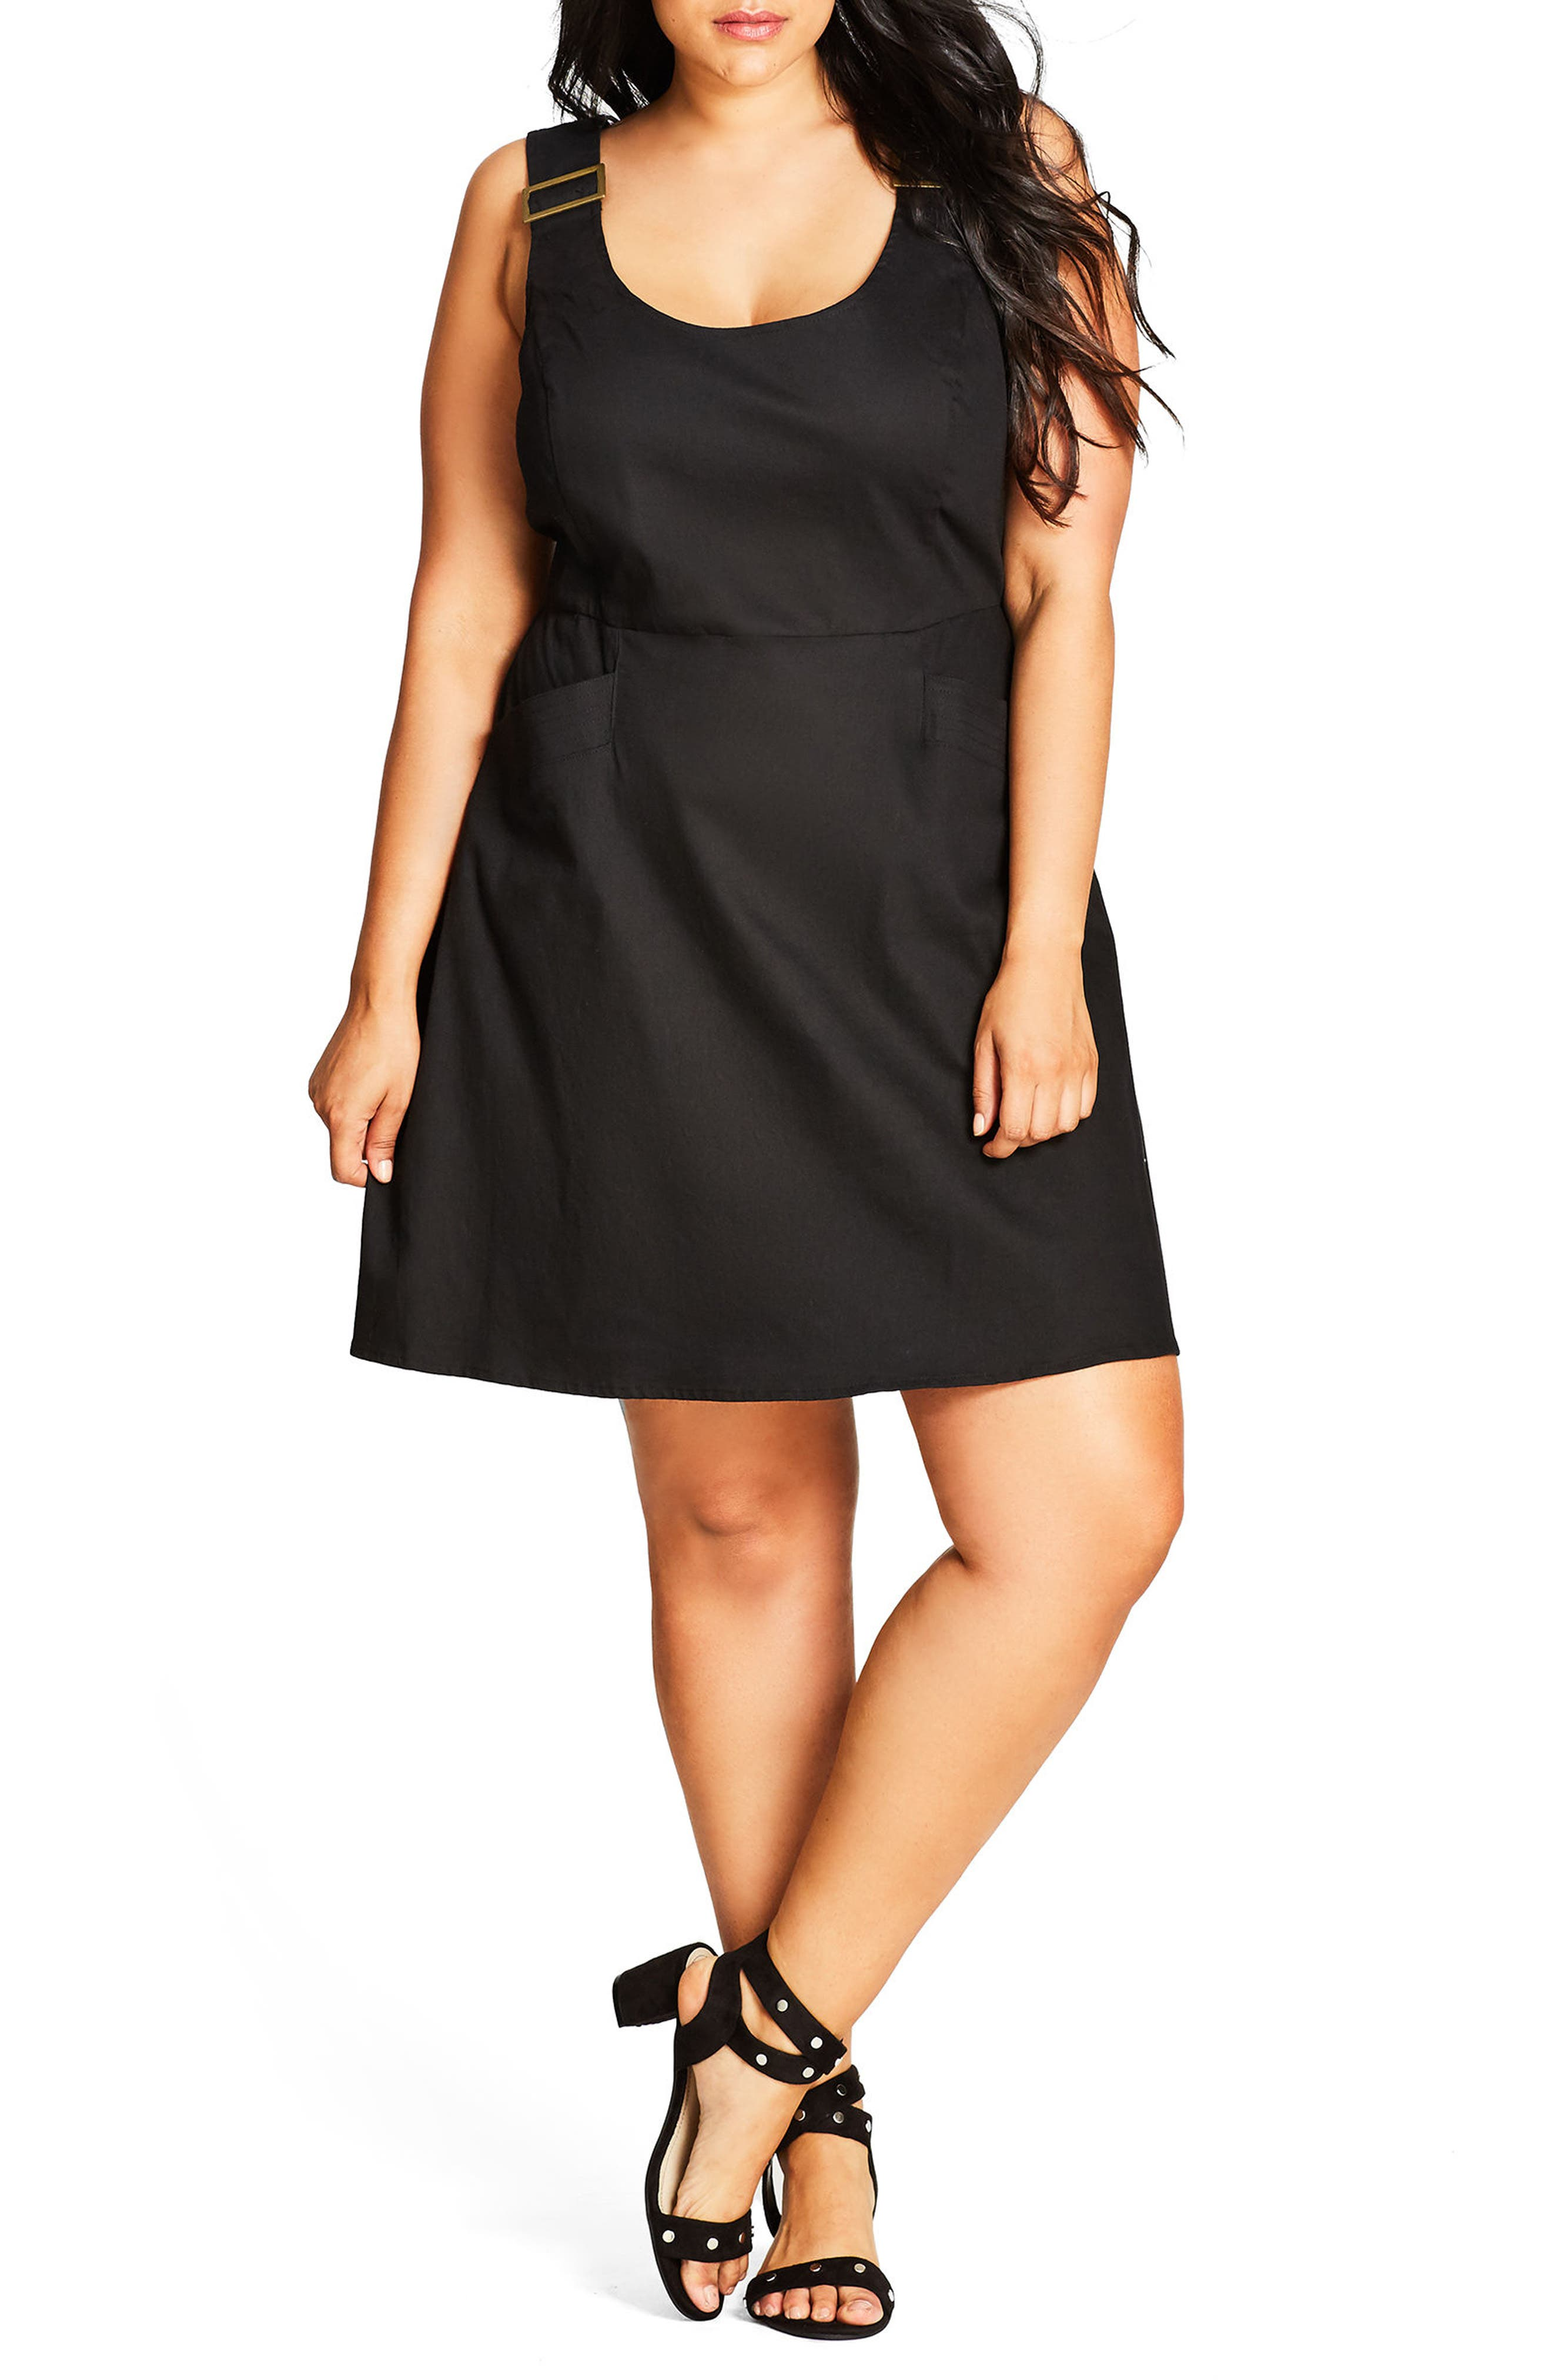 Cute Overall Dress,                             Alternate thumbnail 2, color,                             001